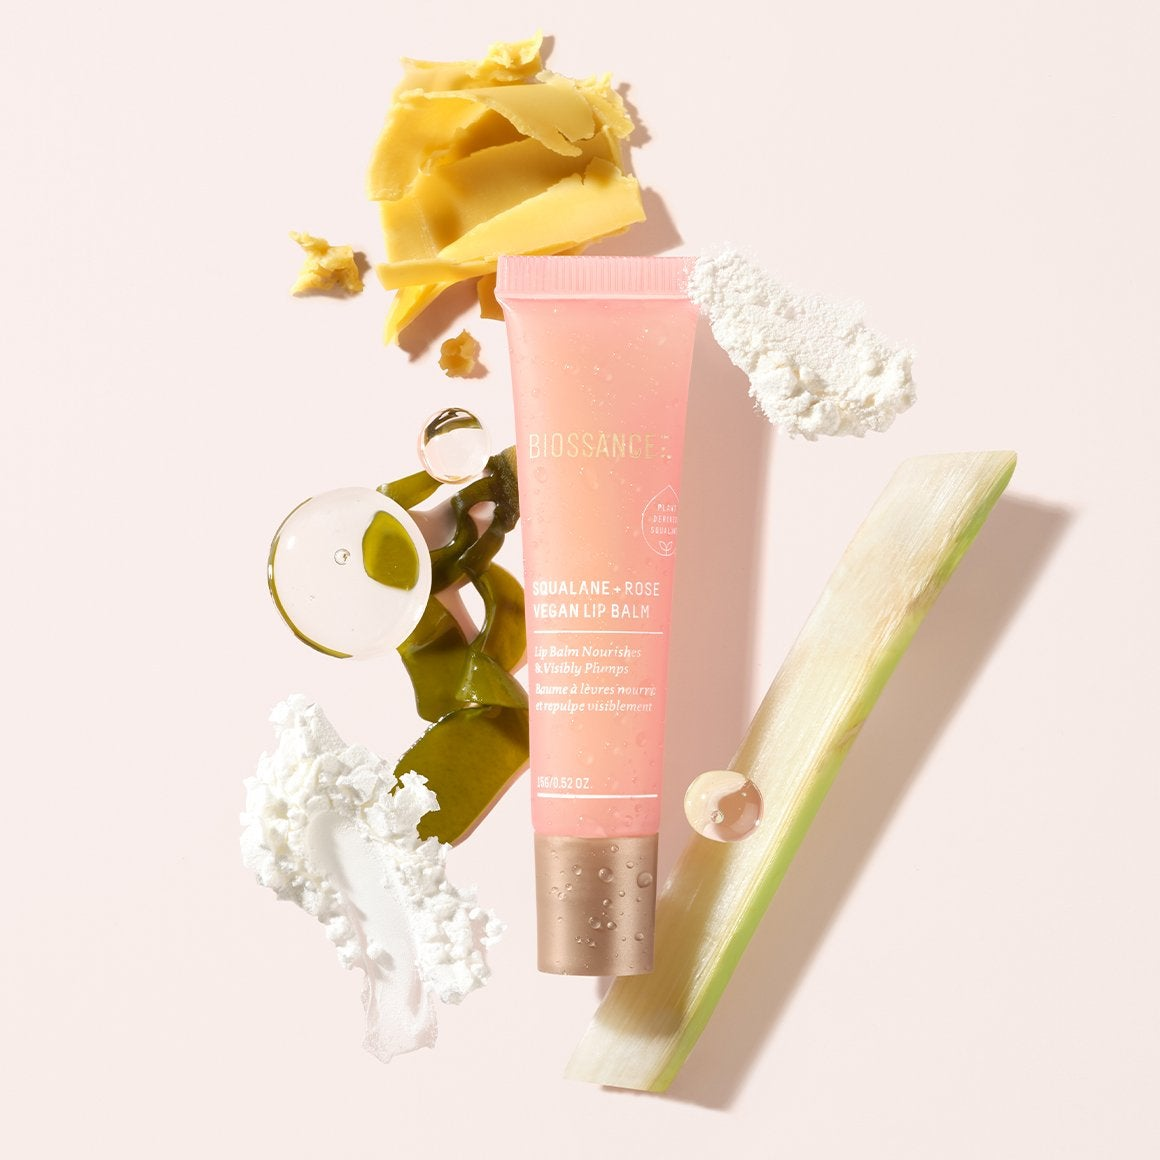 Pink and gold tube of Biossance Rose Vegan Lip Balm